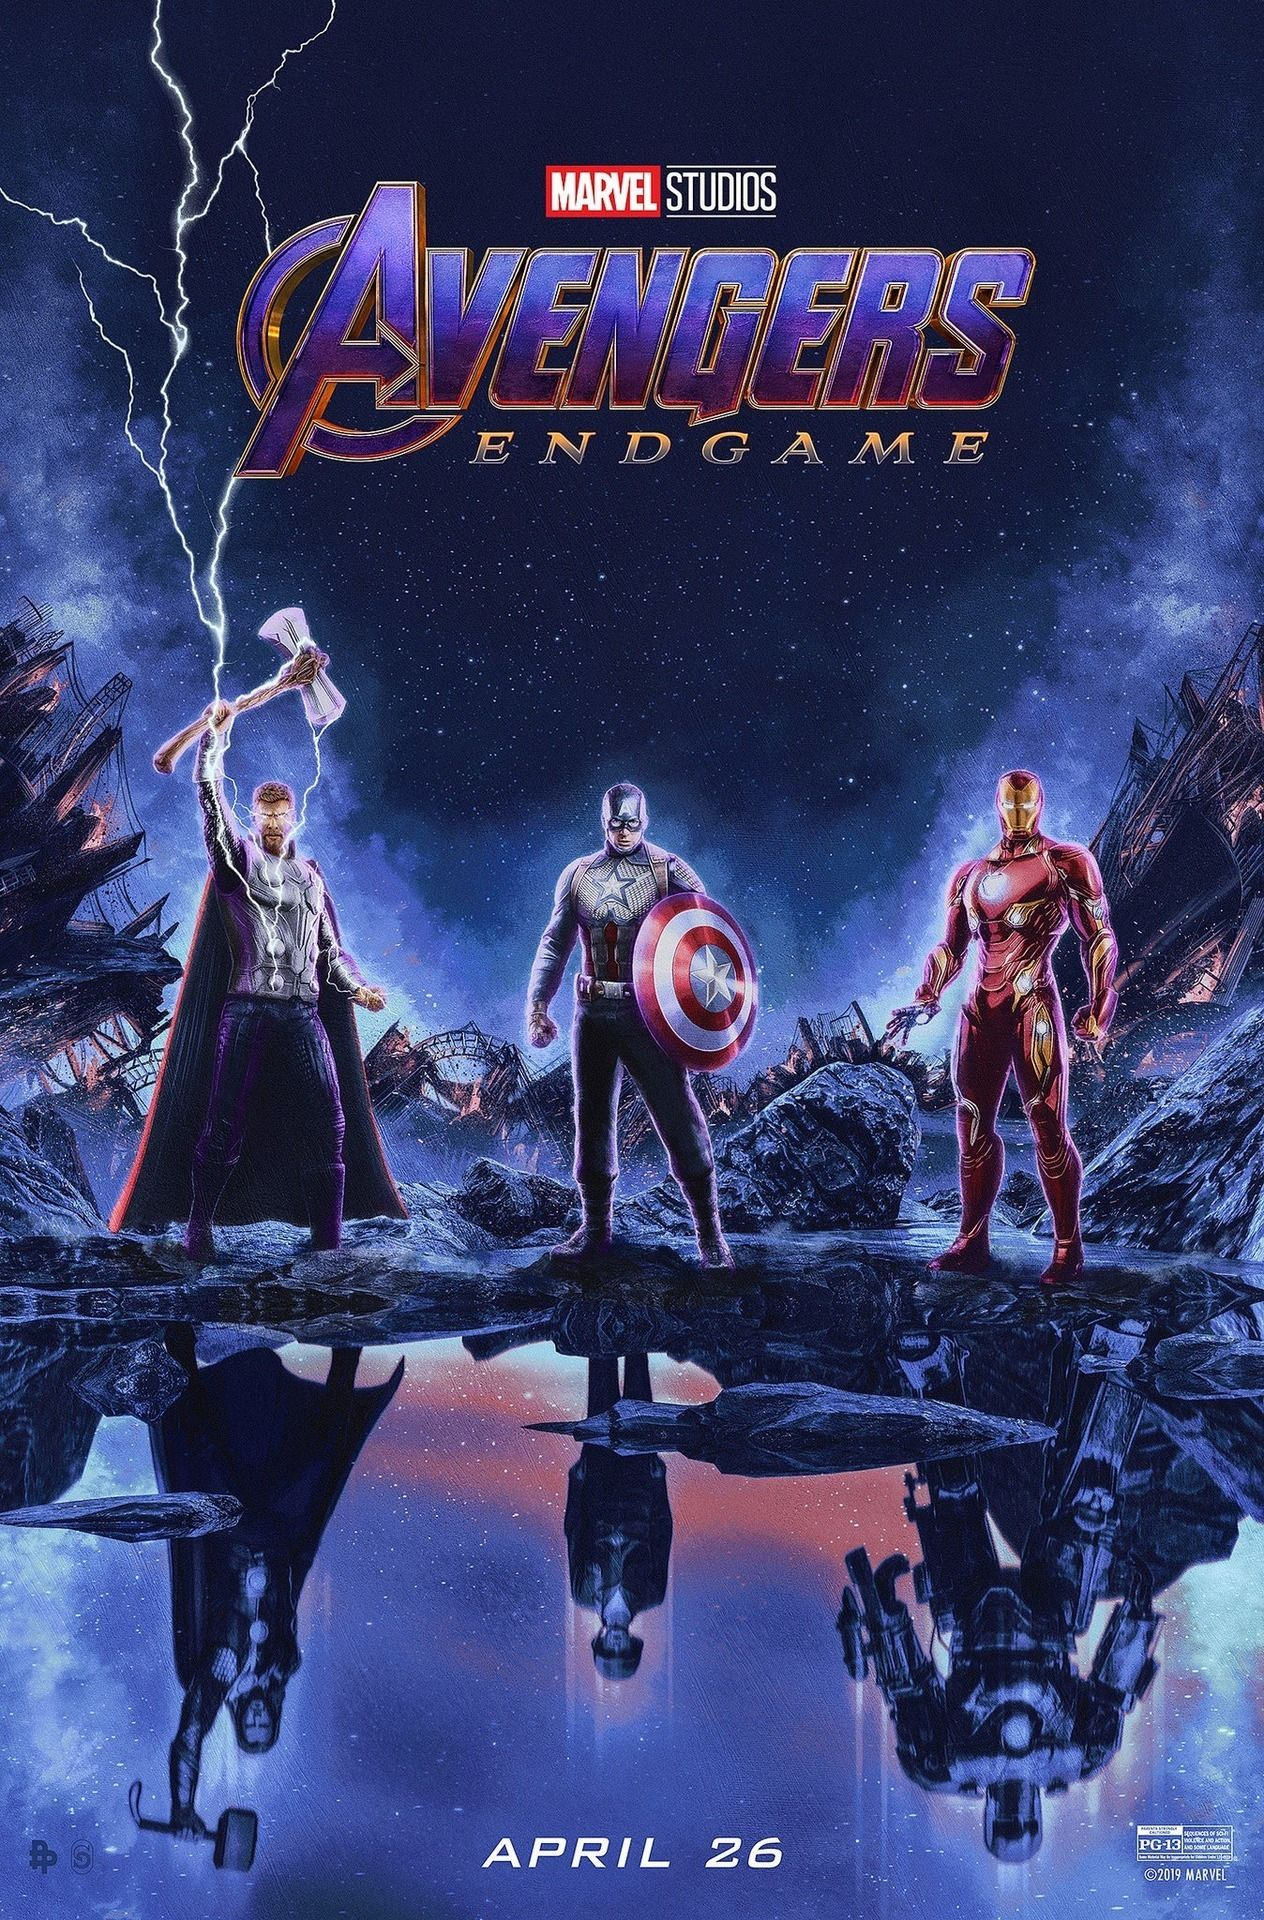 5 Wild Avengers Endgame Theories That Could Happen Marvel